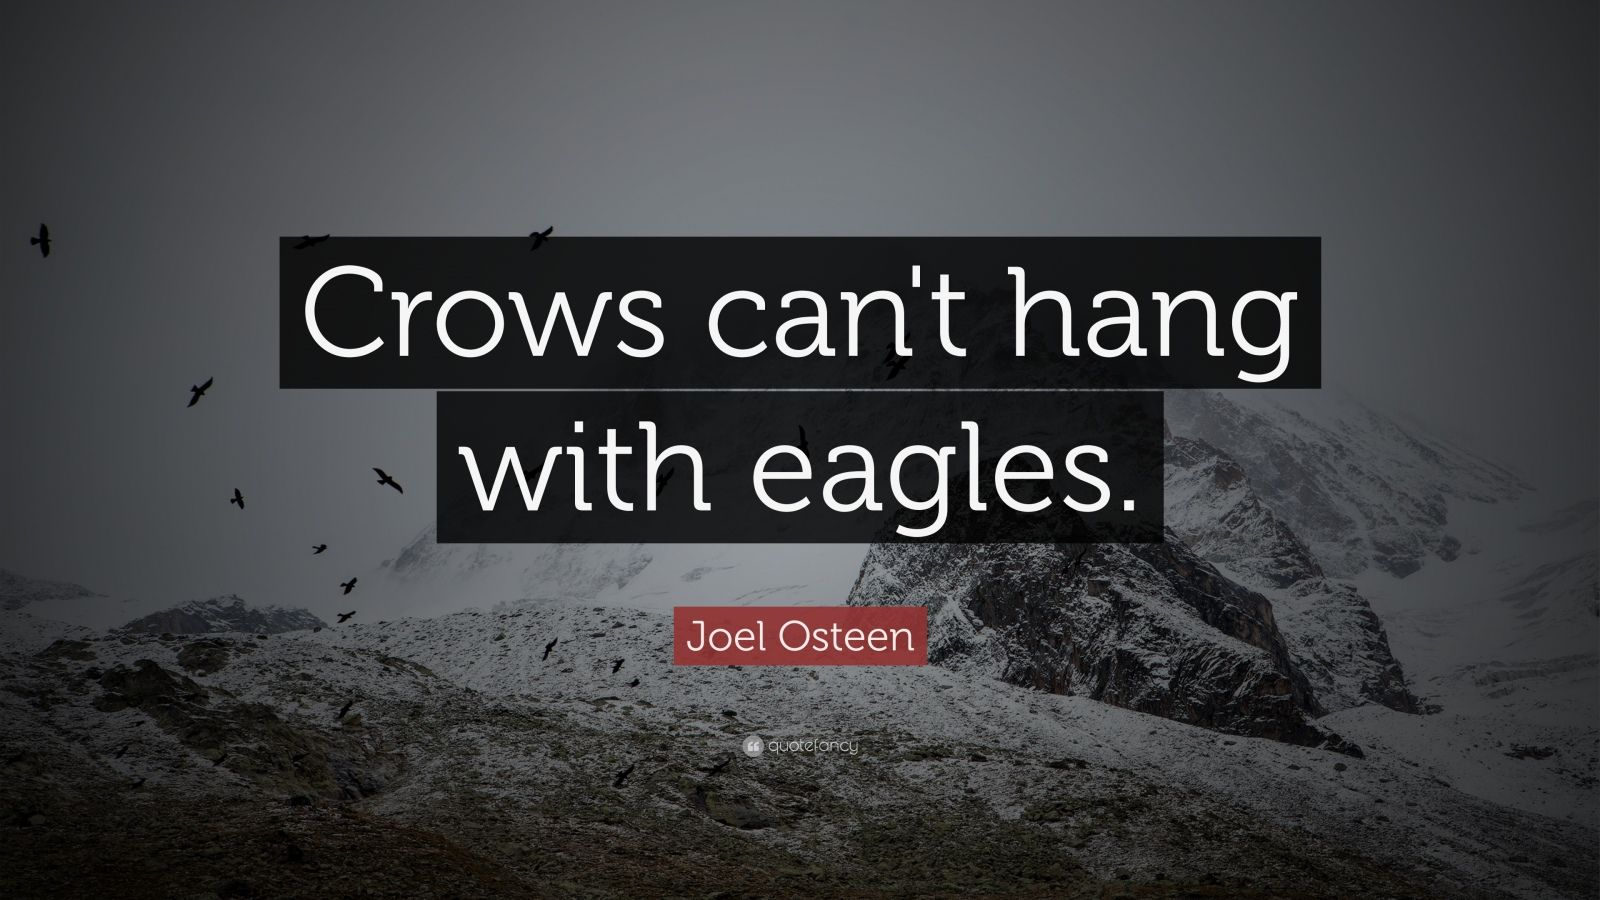 Success Quotes Hd Wallpapers Joel Osteen Quote Crows Can T Hang With Eagles 11